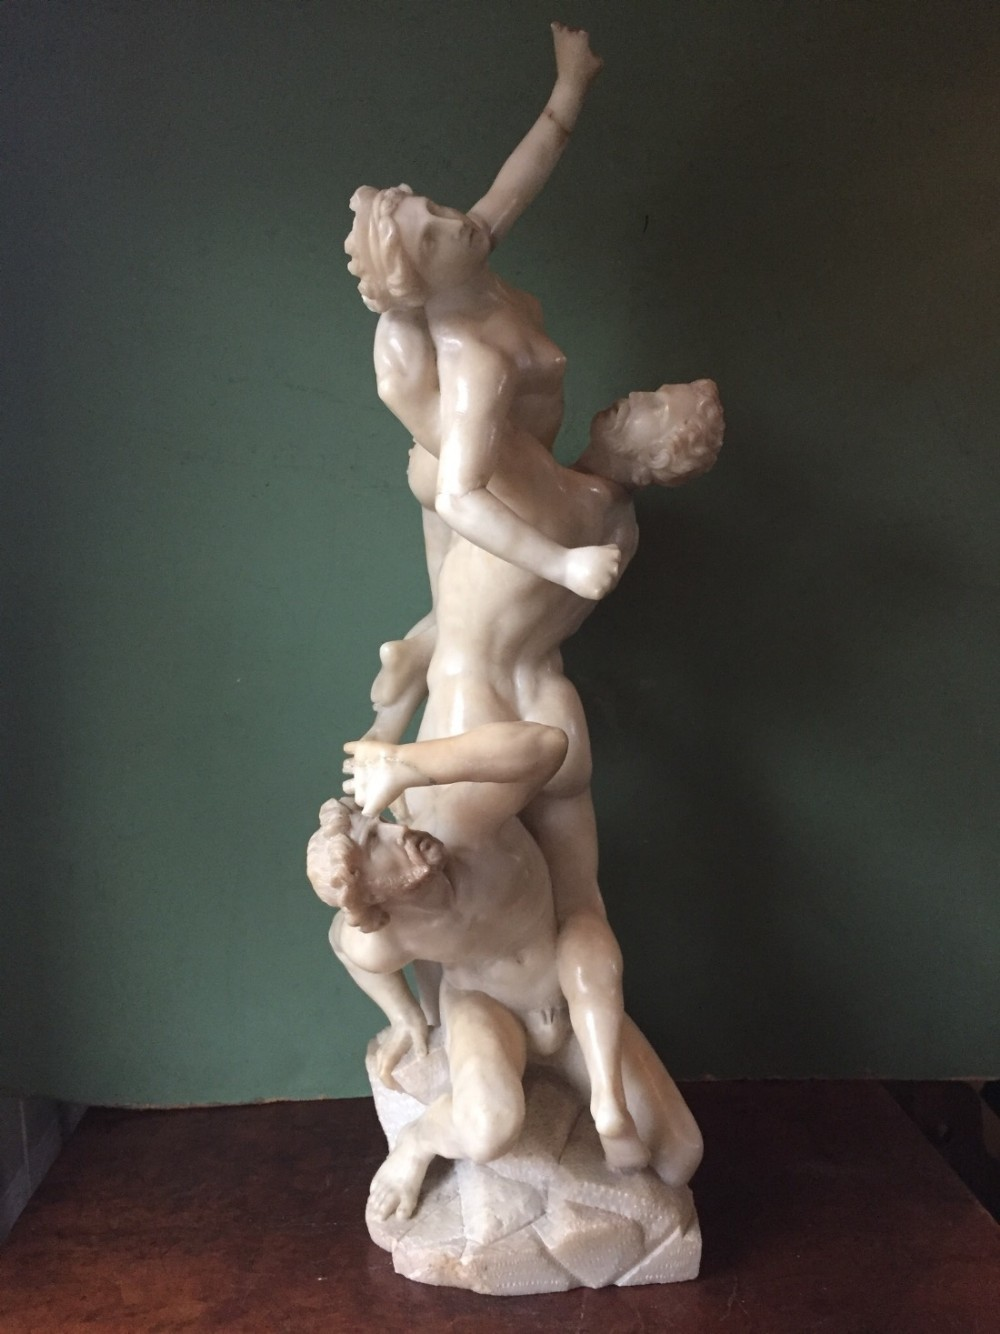 late c19th italian 'grand tour' souvenir carved alabaster sculpture group after giambologna the abduction of the sabine women